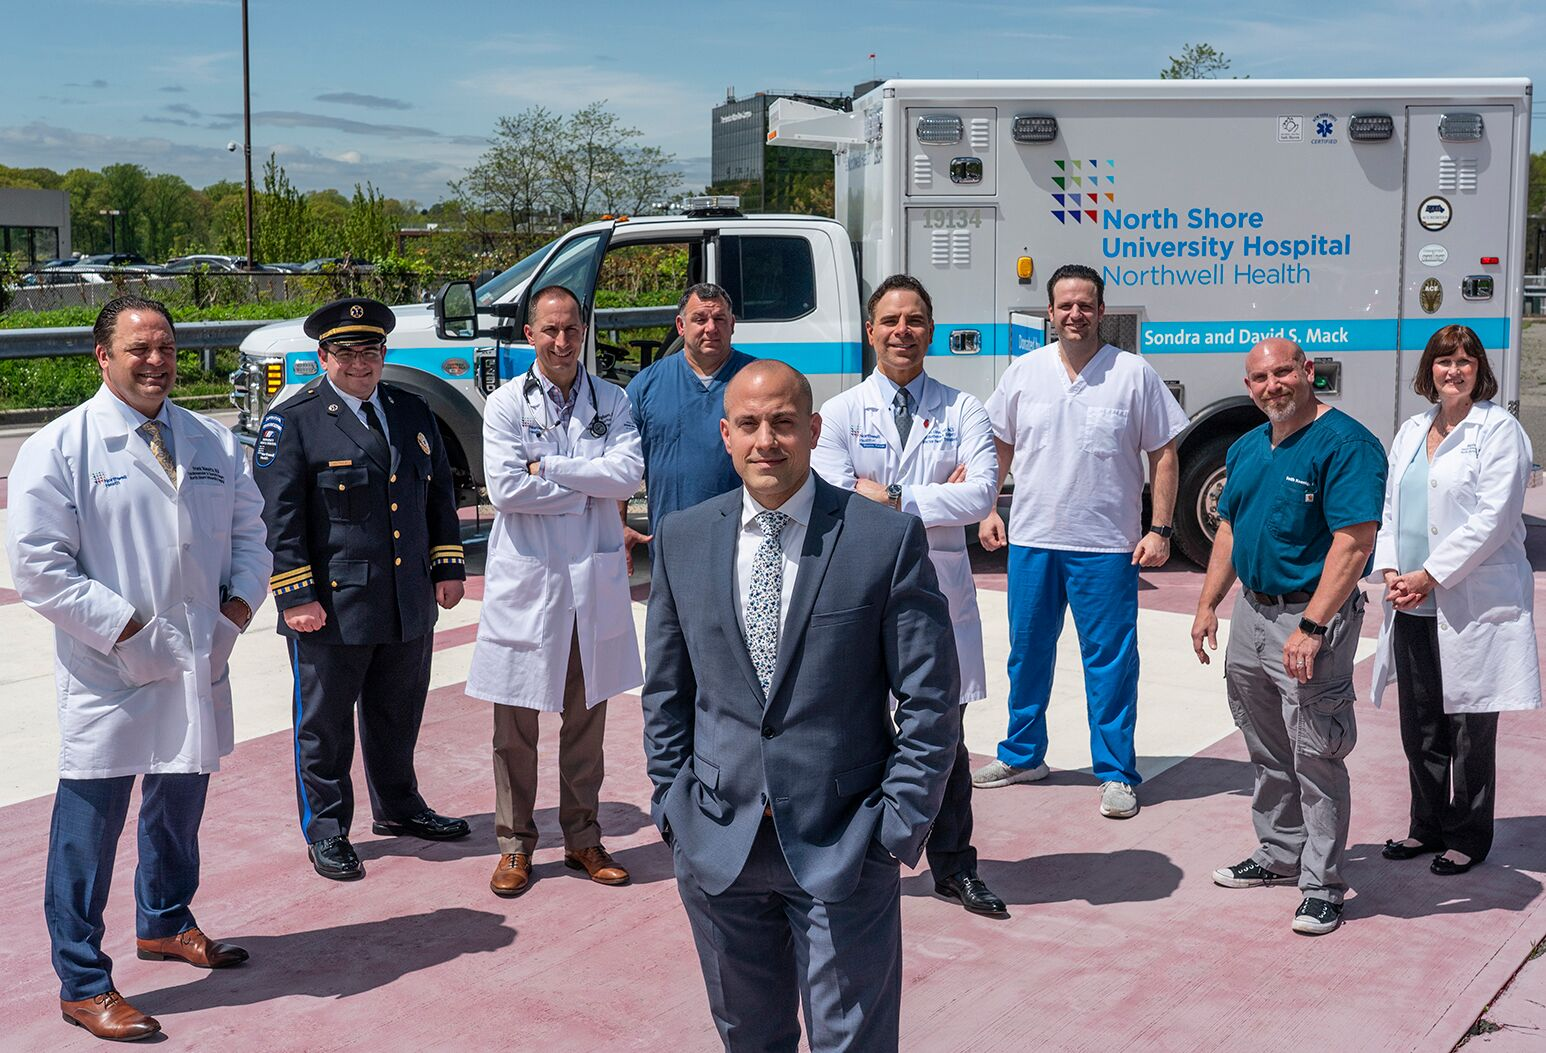 Northwell Health's mobile medical team treats the sickest patients needing heart-lung life support.